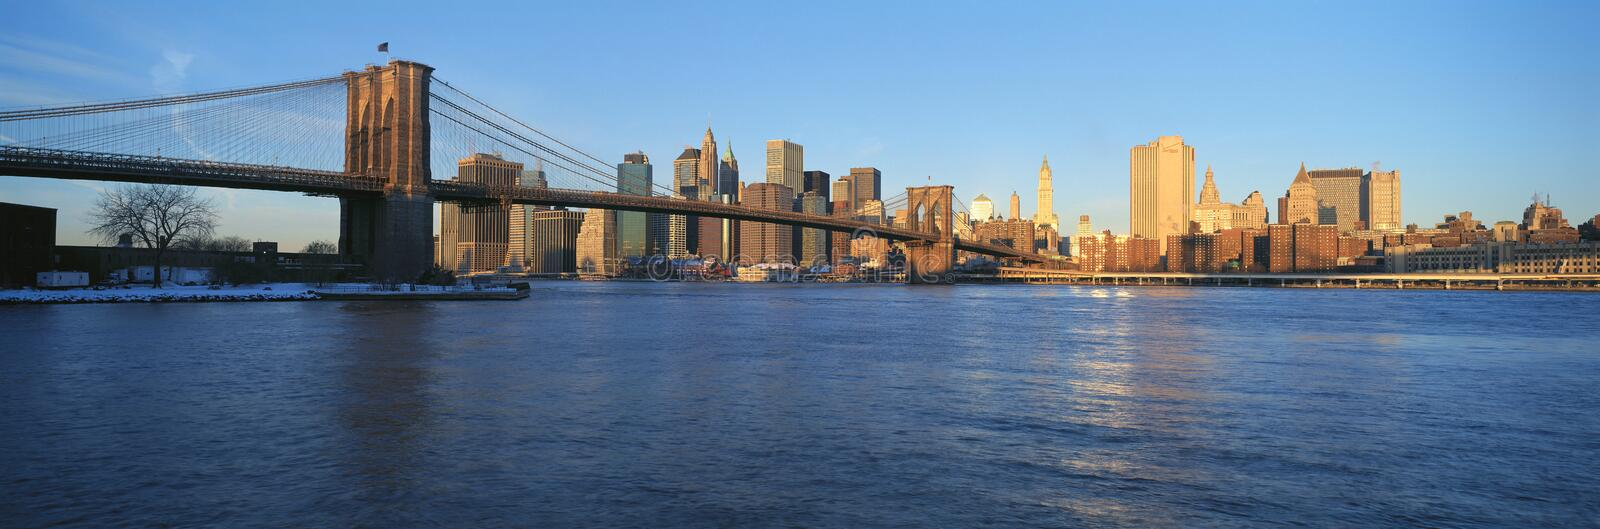 Panoramic view of Brooklyn Bridge and East River at sunrise with New York City, where World Trade Towers were located, NY royalty free stock photos